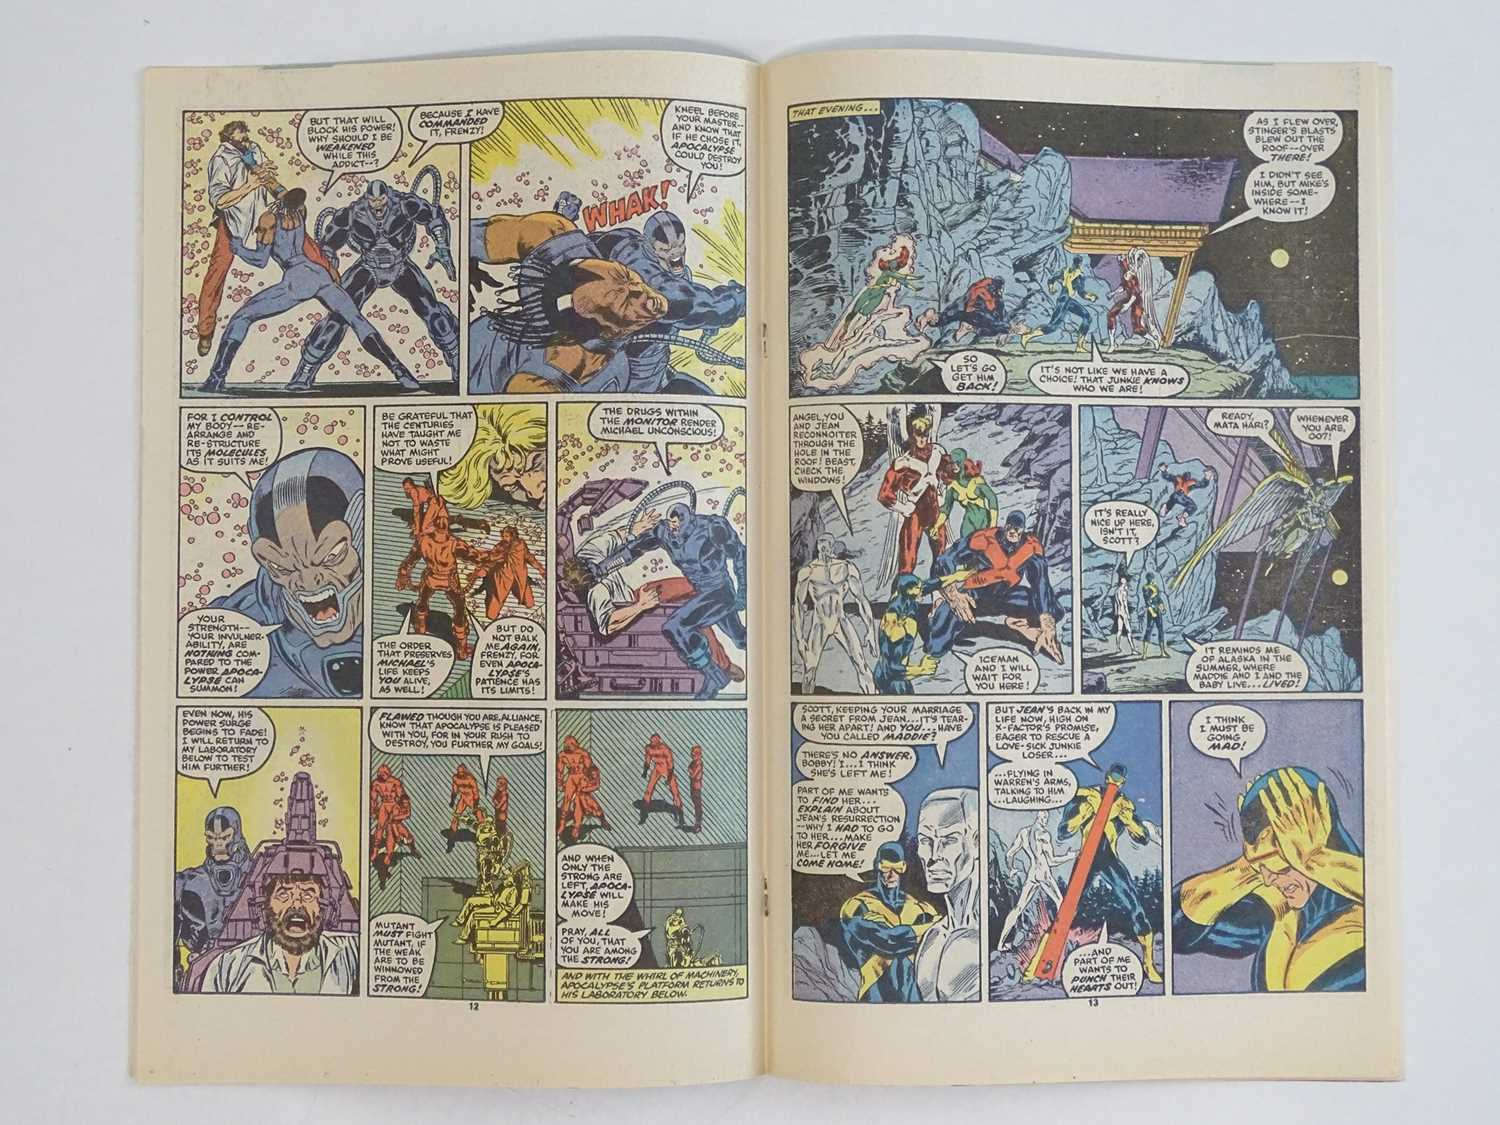 X-FACTOR #6 - (1986 - MARVEL) - Includes First (Full) Appearance of Apocalypse - Flat/Unfolded - a - Image 5 of 9